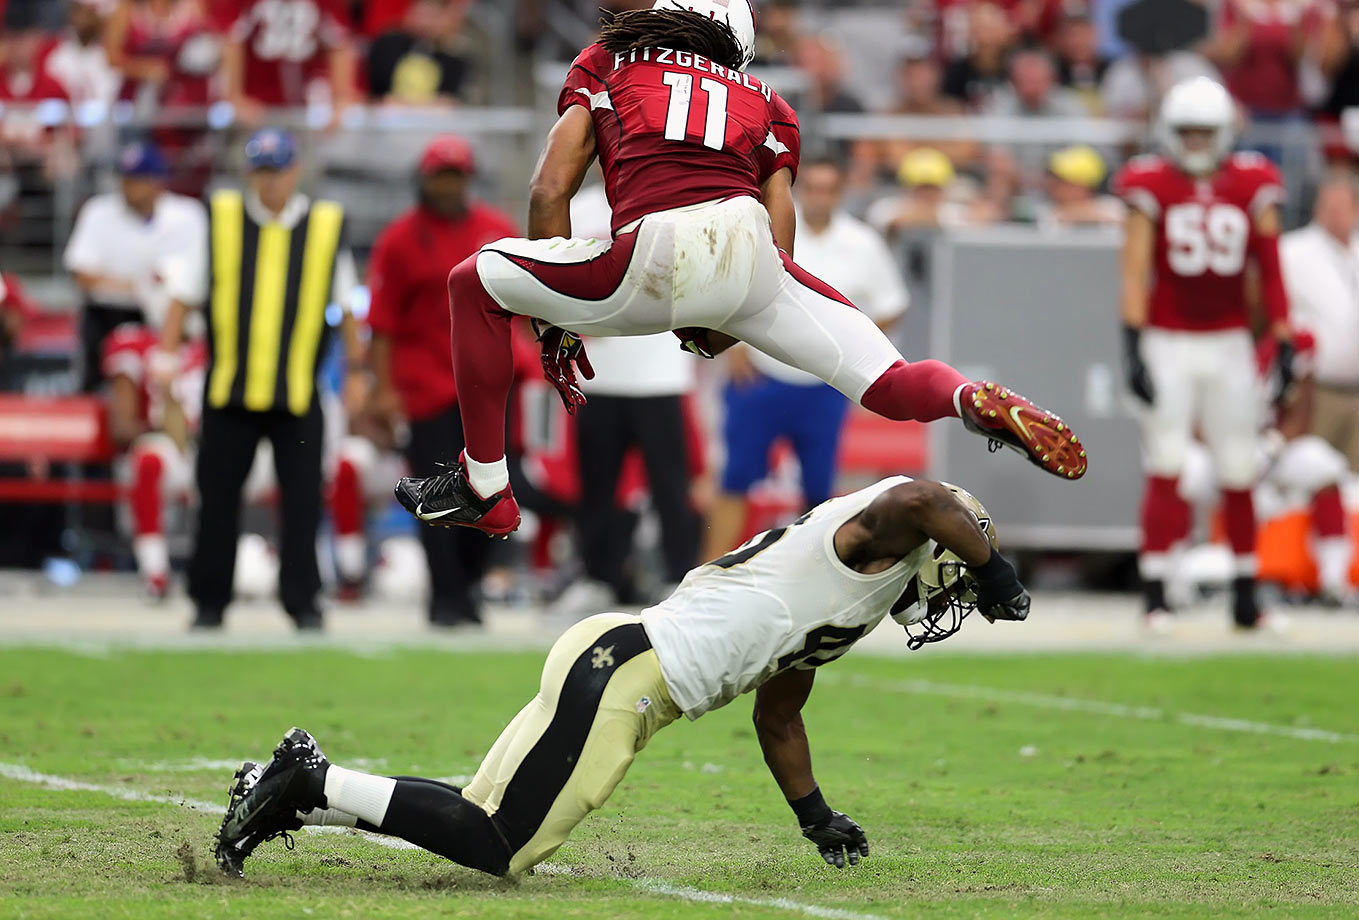 Wide receiver Larry Fitzgerald leaps over defensive back Delvin Breaux of the New Orleans Saints during the Arizona Cardinals victory.